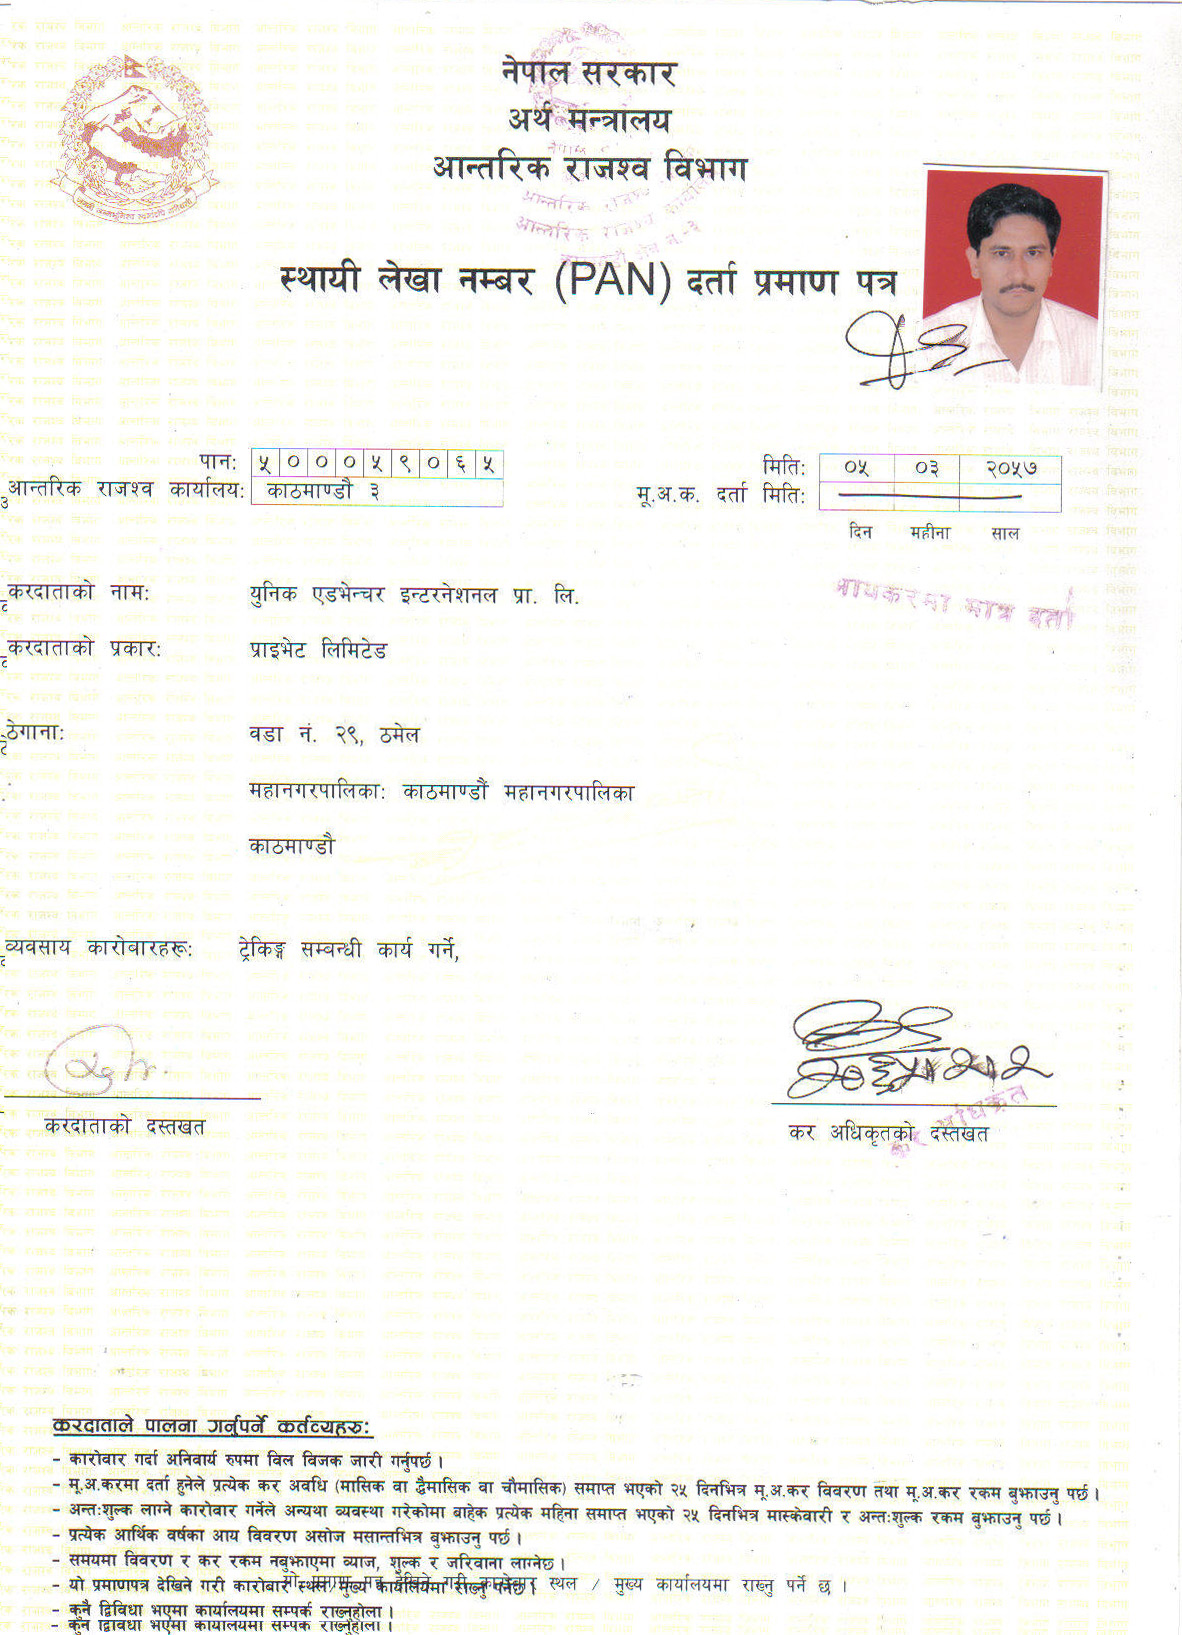 Certificate of Permanent Account Number (PAN) registration